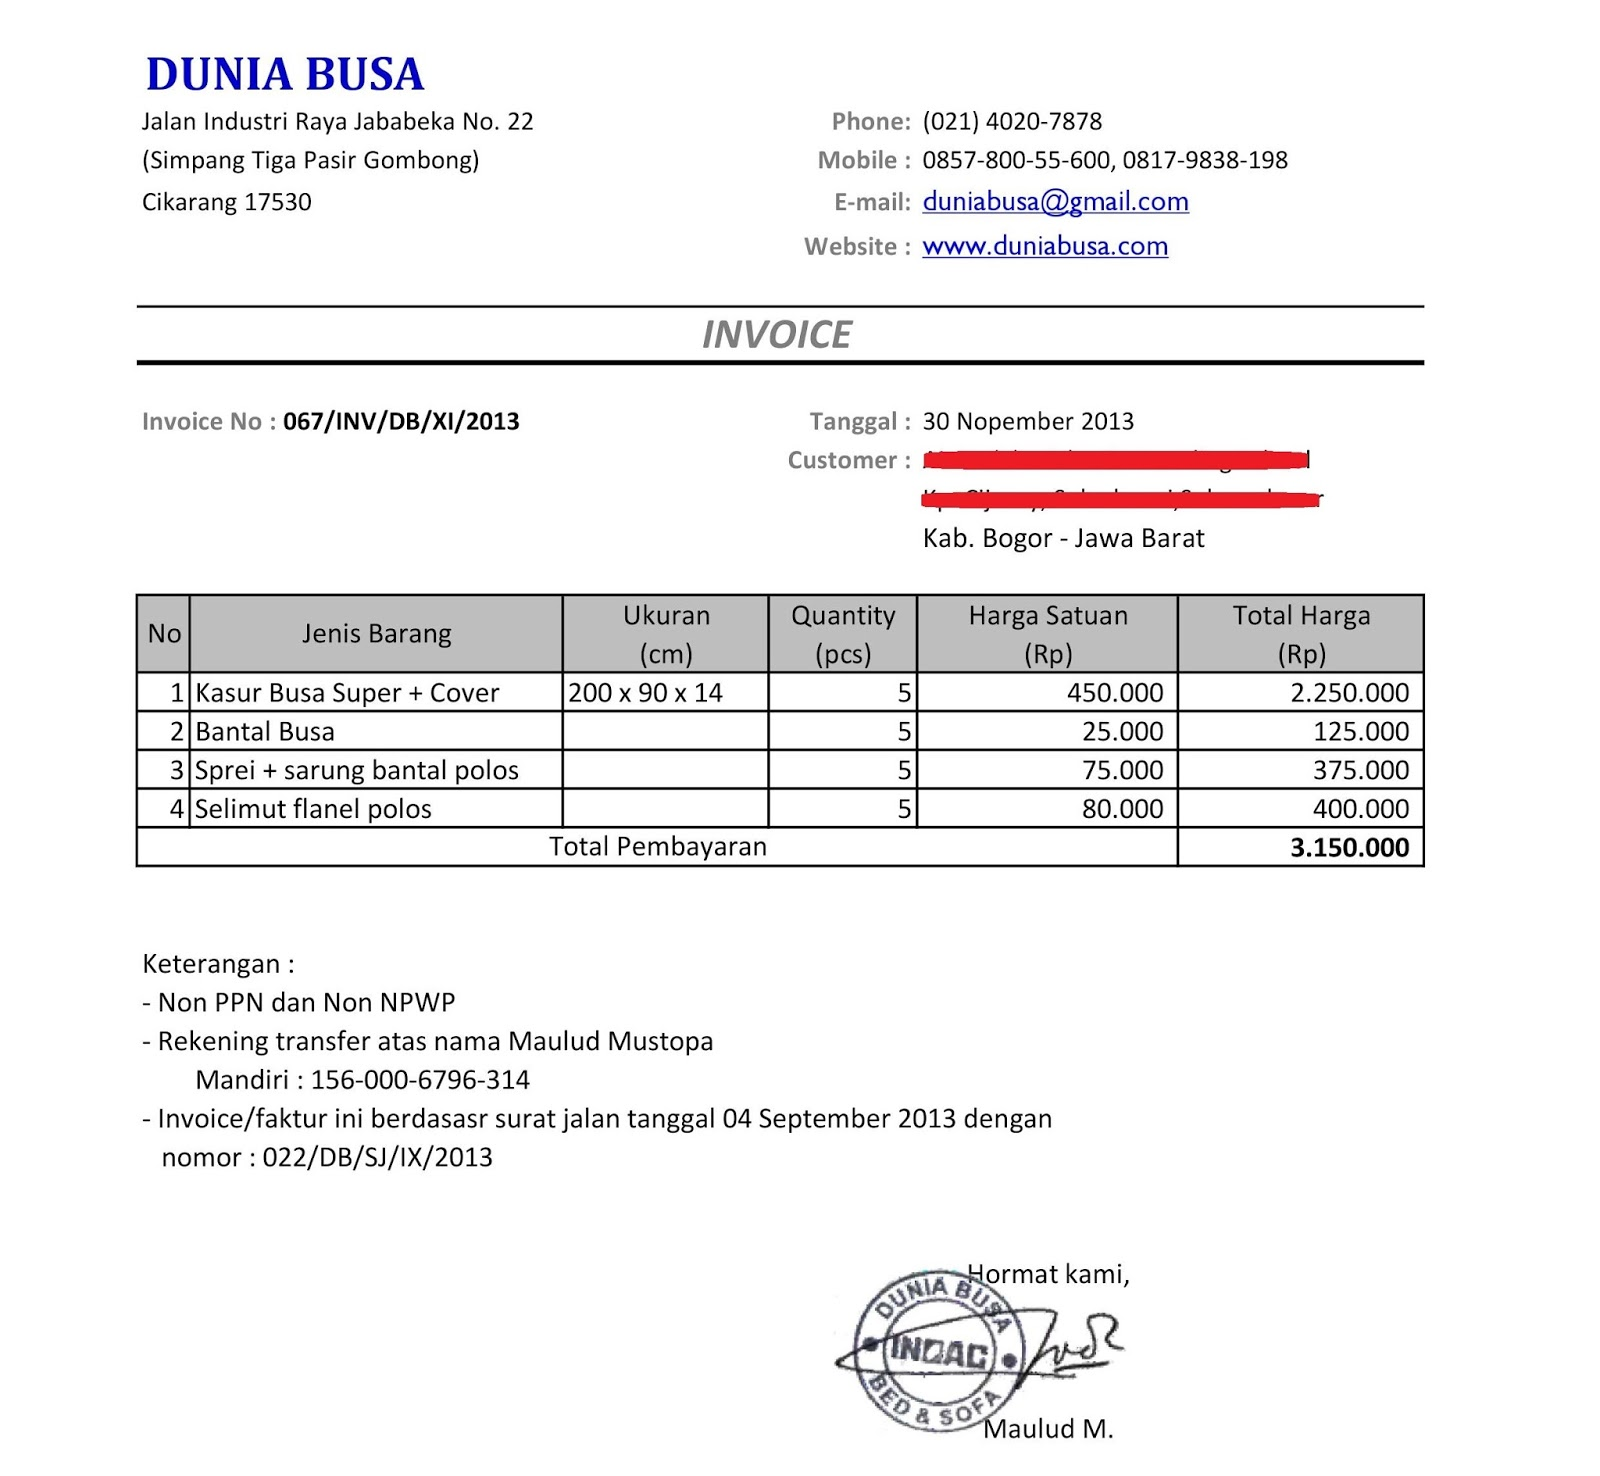 Opportunitycaus  Terrific Free Invoice Online  Create Invoice Online  Invoice Template  With Fascinating Contoh Format Invoice Atau Surat Tagihan  Brankas Arsip  Free Invoice Online With Nice Free Printable Invoice Templates Also Photography Invoice Template In Addition Example Invoice And Free Invoice Template Excel As Well As Invoice Works Additionally Stripe Invoice From Sklepco With Opportunitycaus  Fascinating Free Invoice Online  Create Invoice Online  Invoice Template  With Nice Contoh Format Invoice Atau Surat Tagihan  Brankas Arsip  Free Invoice Online And Terrific Free Printable Invoice Templates Also Photography Invoice Template In Addition Example Invoice From Sklepco